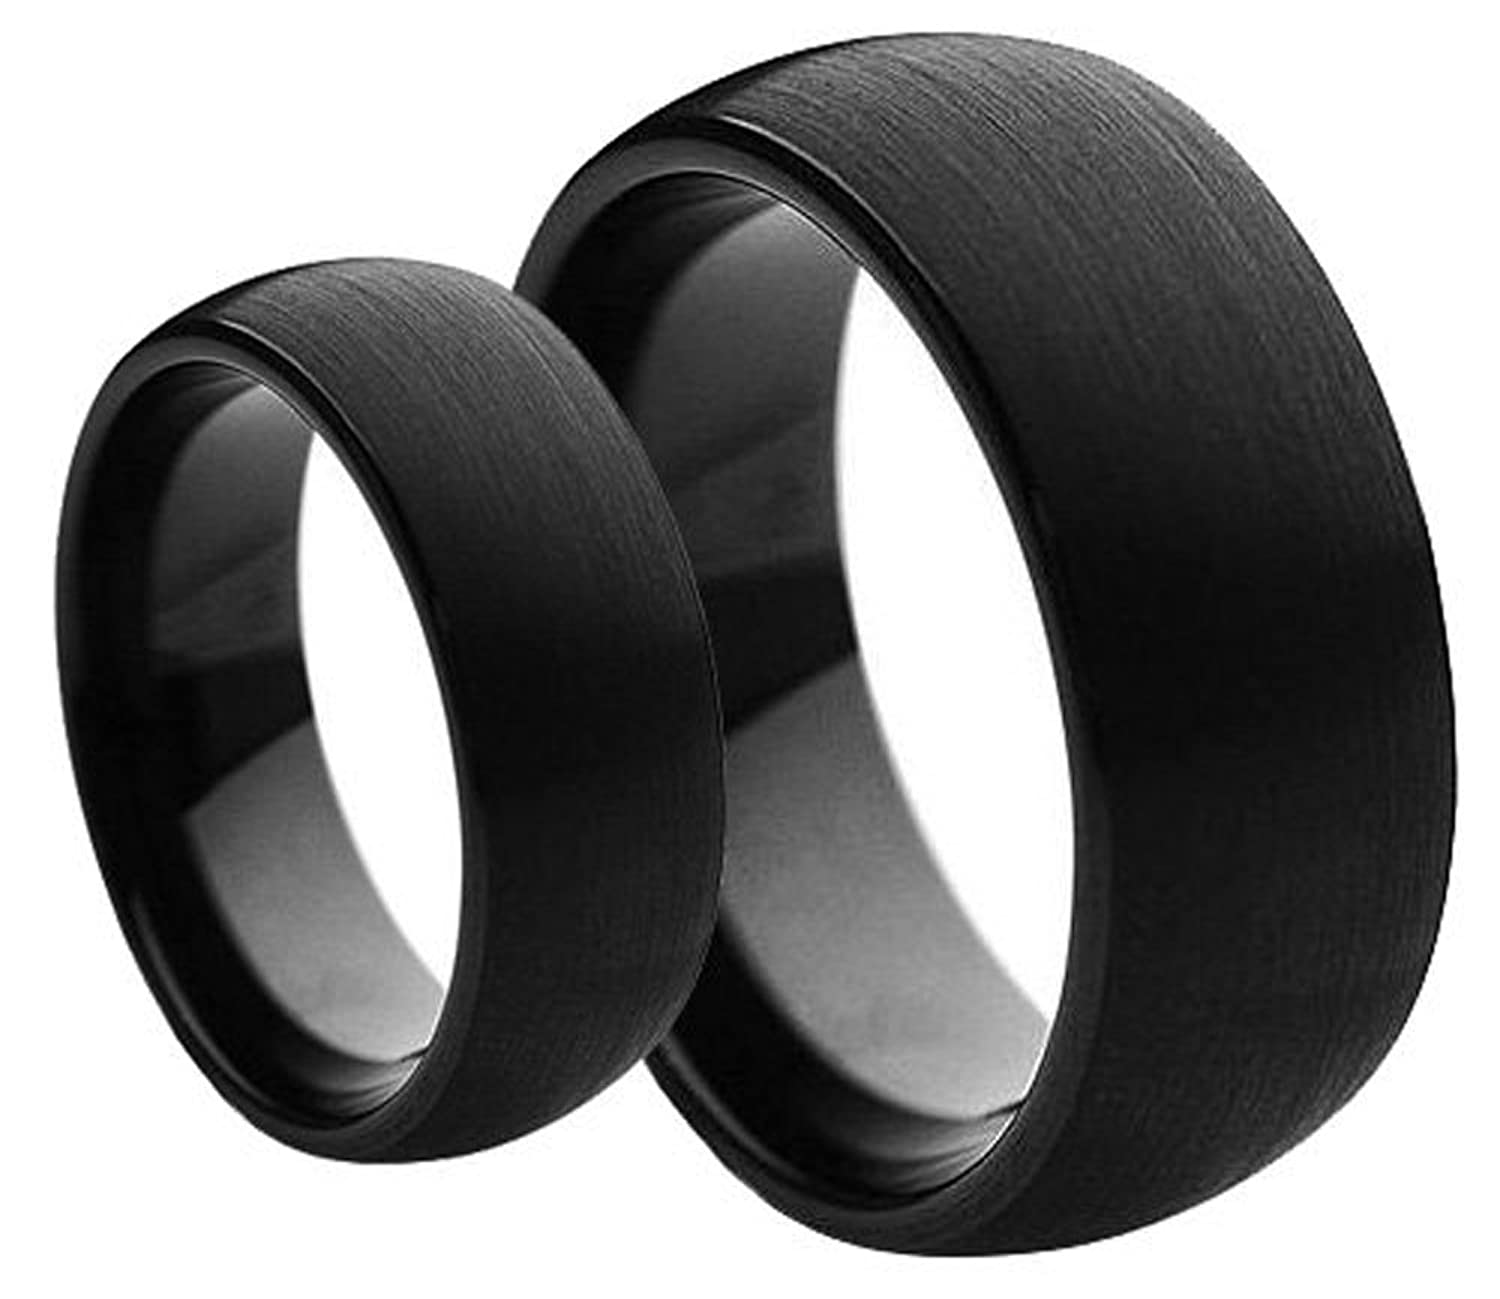 His & Her's 8MM/6MM Black Brushed Finish Domed Tungsten Carbide Wedding Band Ring Set